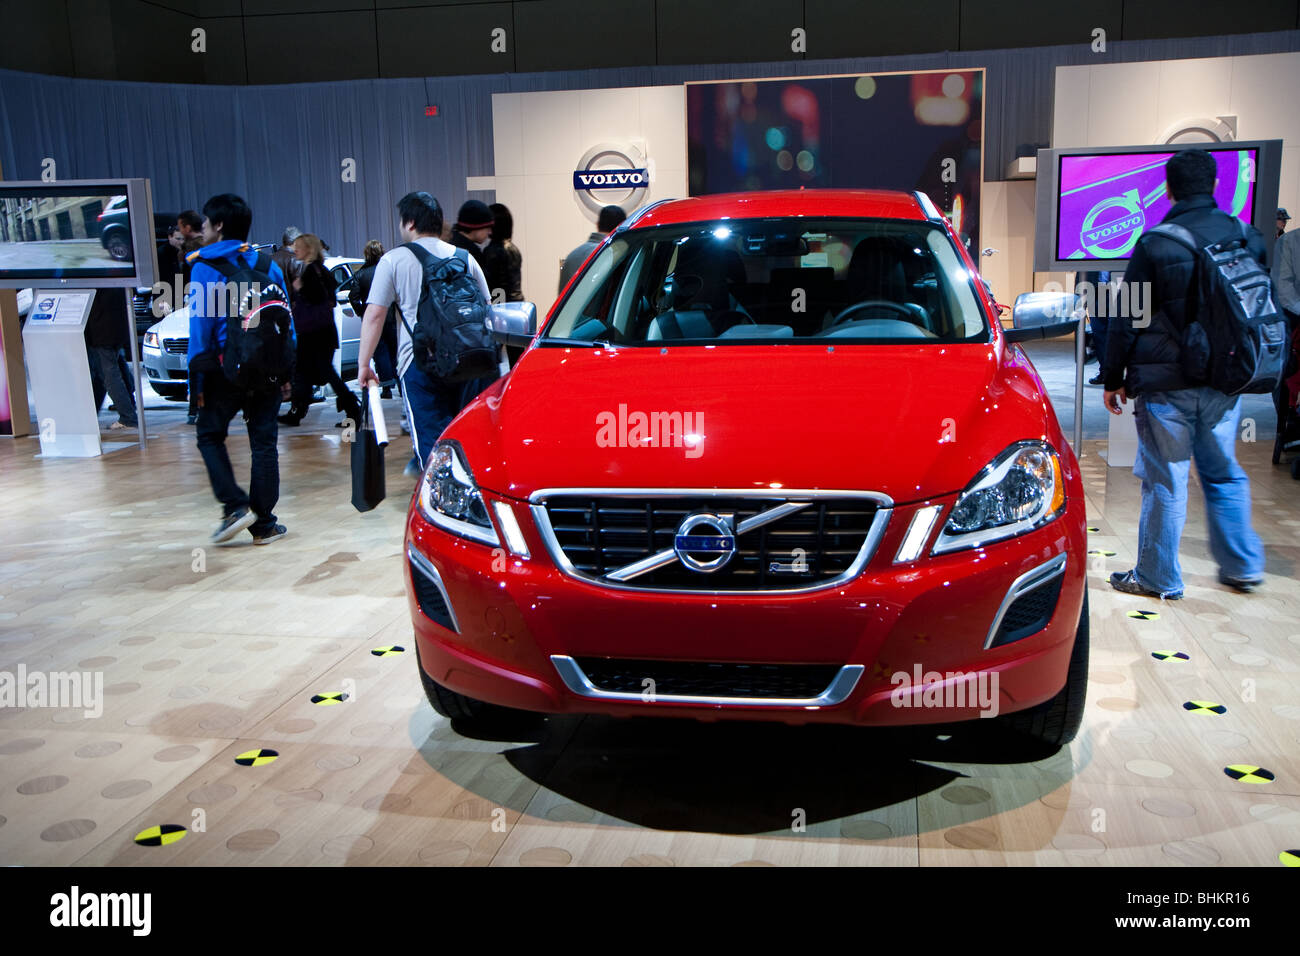 red volvo autoshow - Stock Image